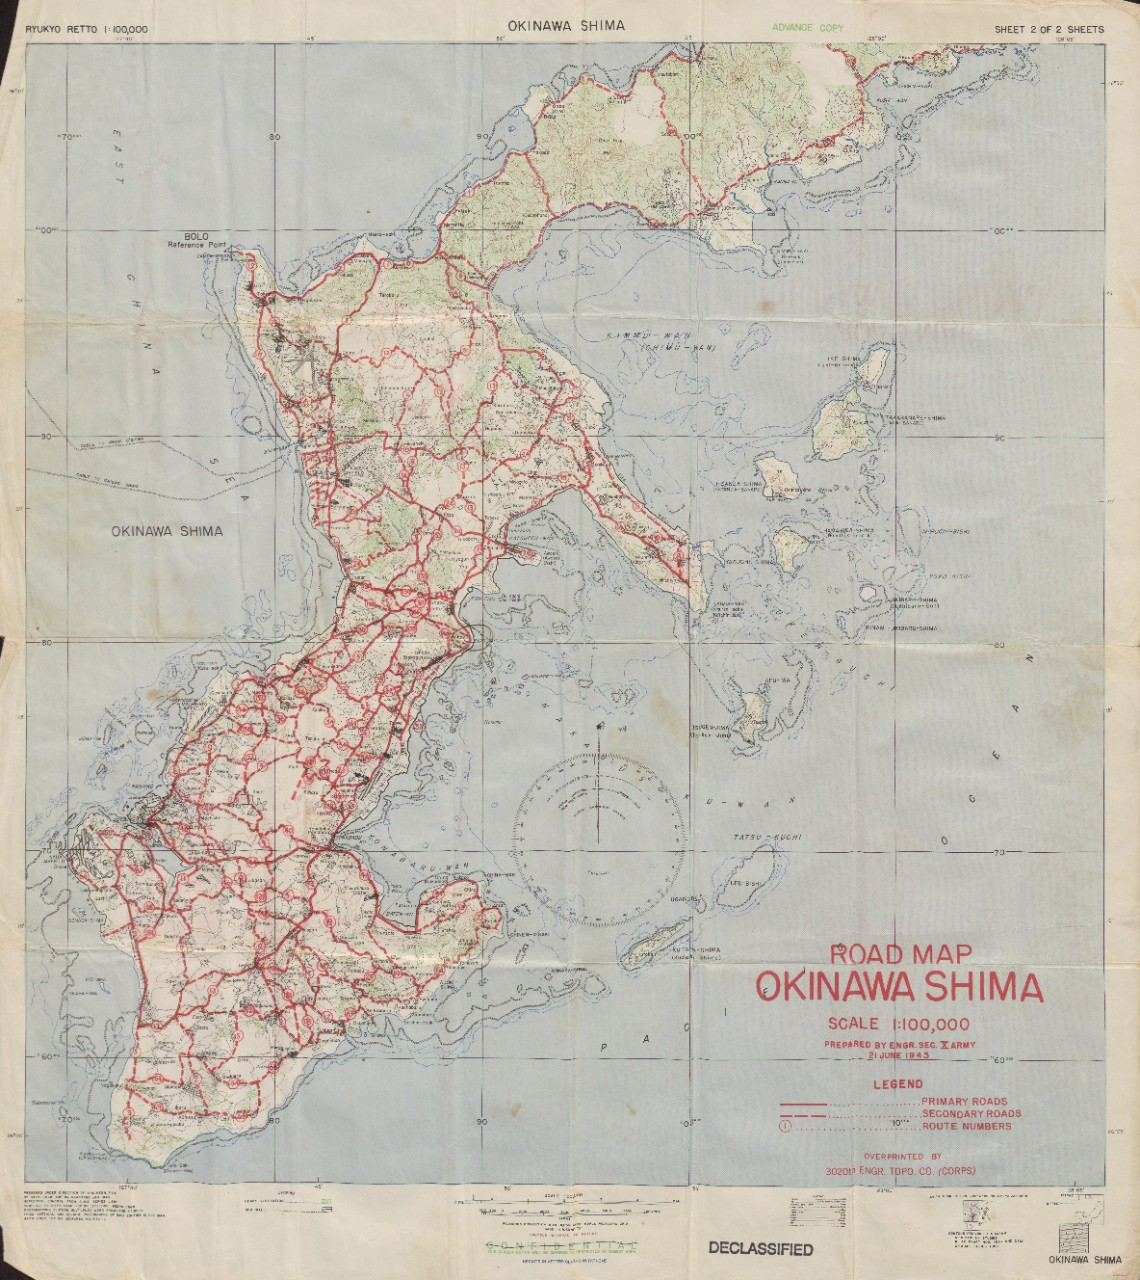 Okinawa Shima Road Map (2 of 2)